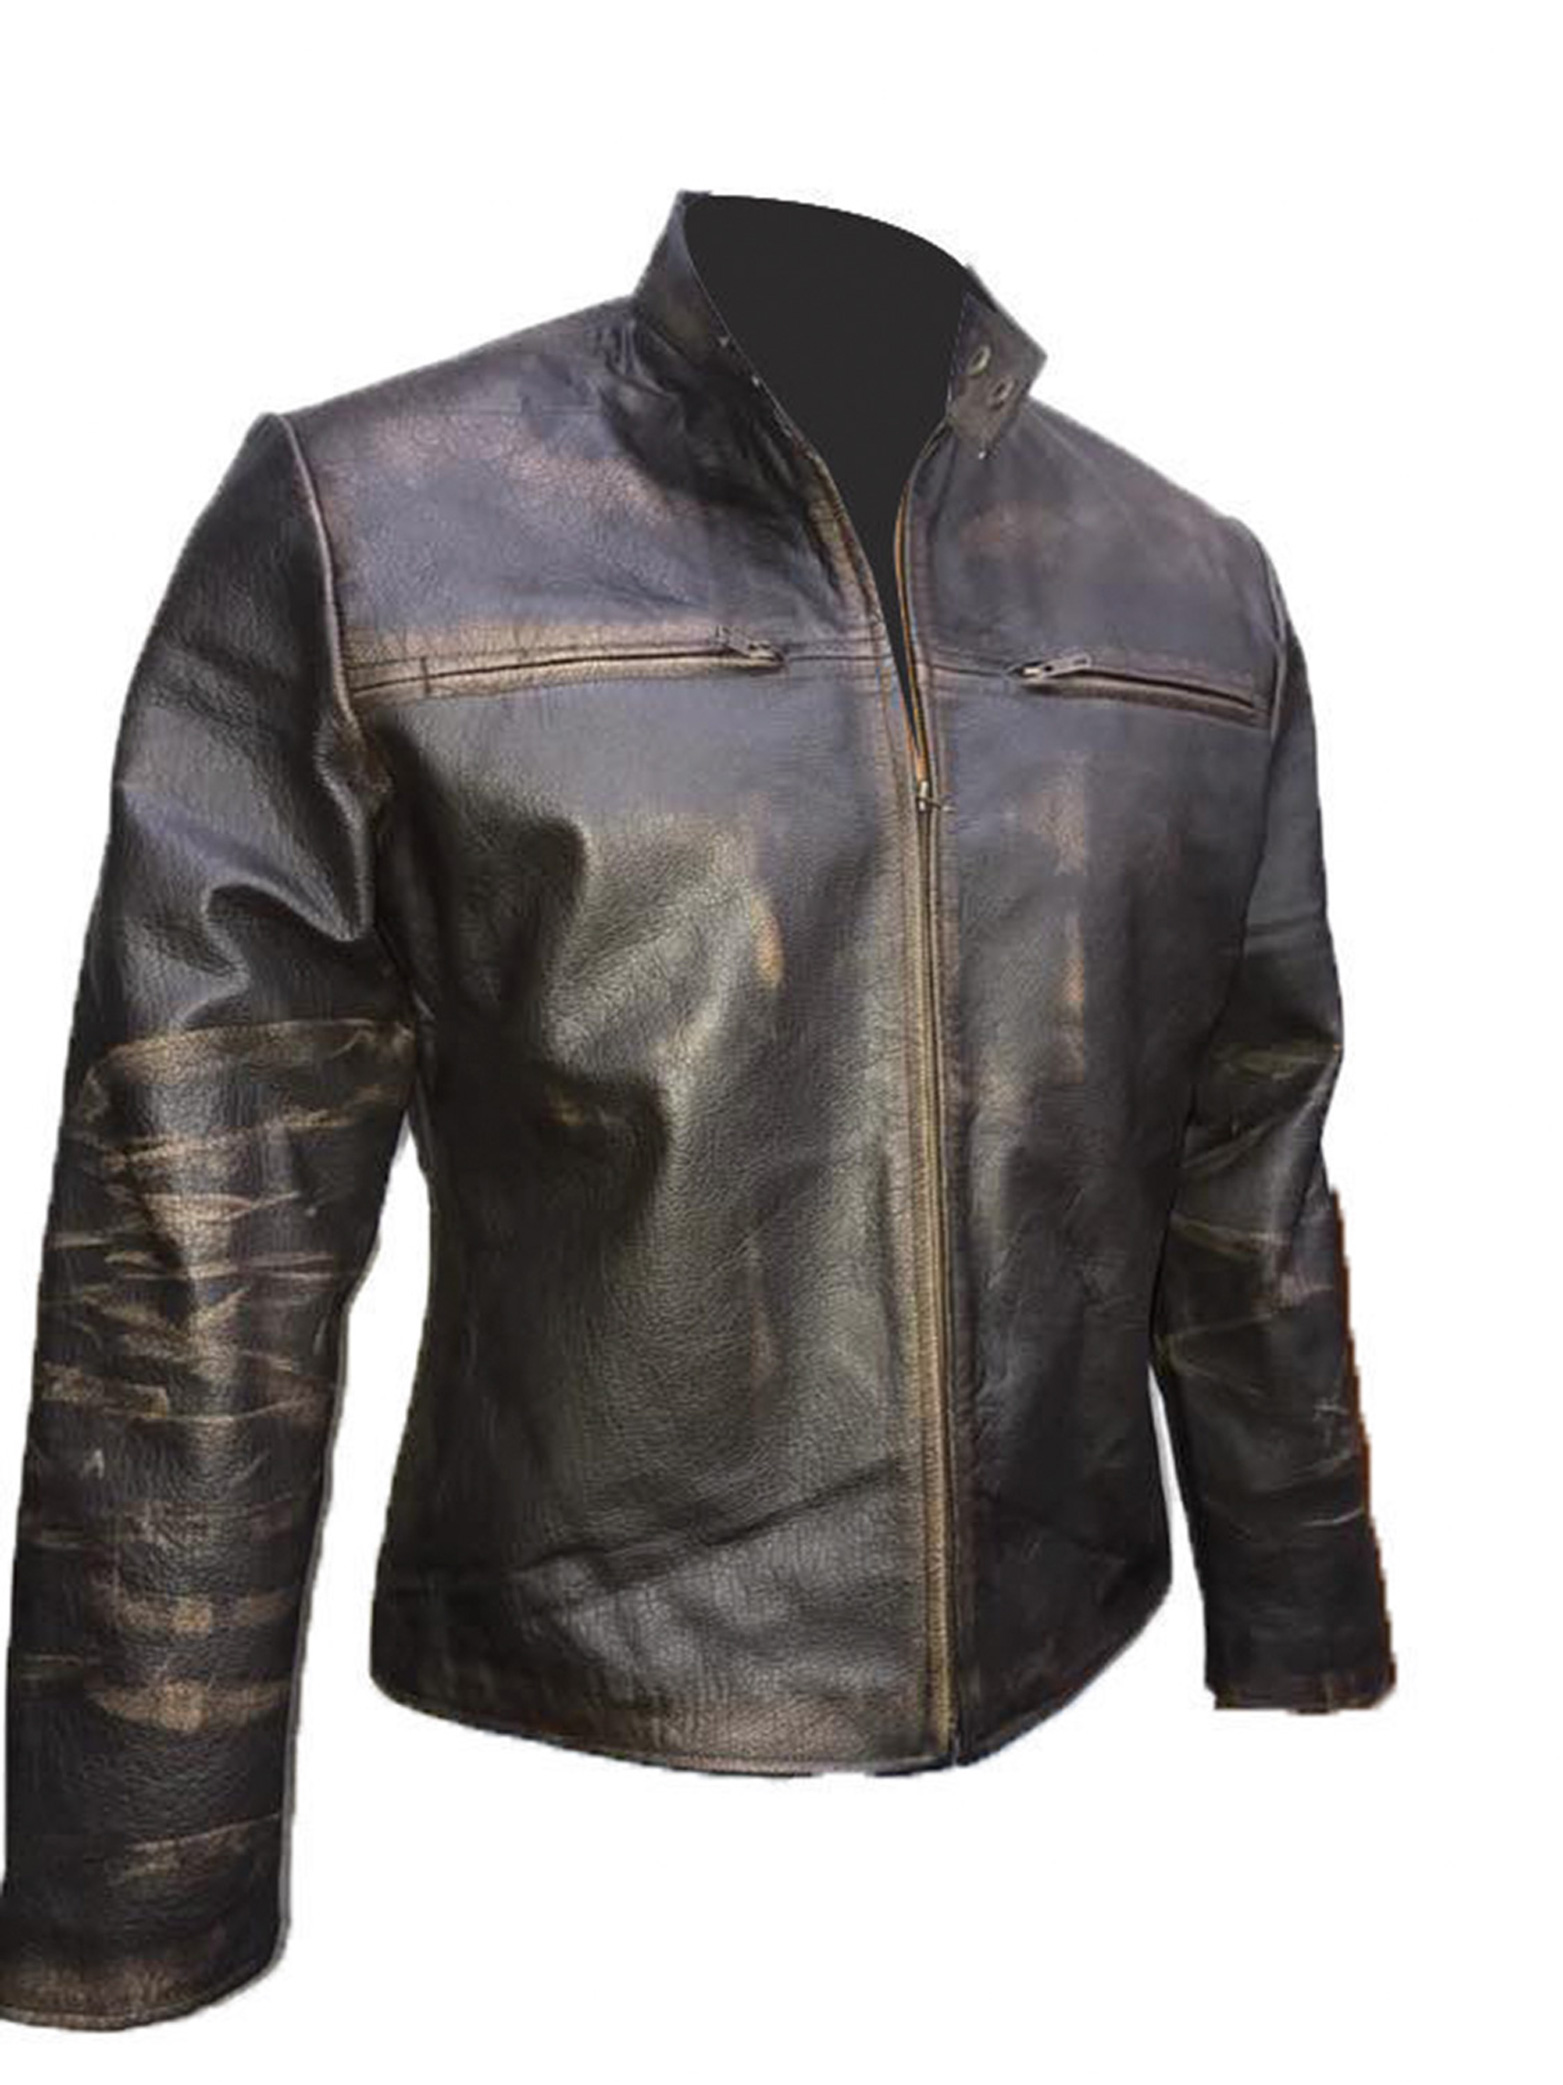 New Men Vintage Biker Retro Motorcycle Cafe Racer Distressed Leather Jacket